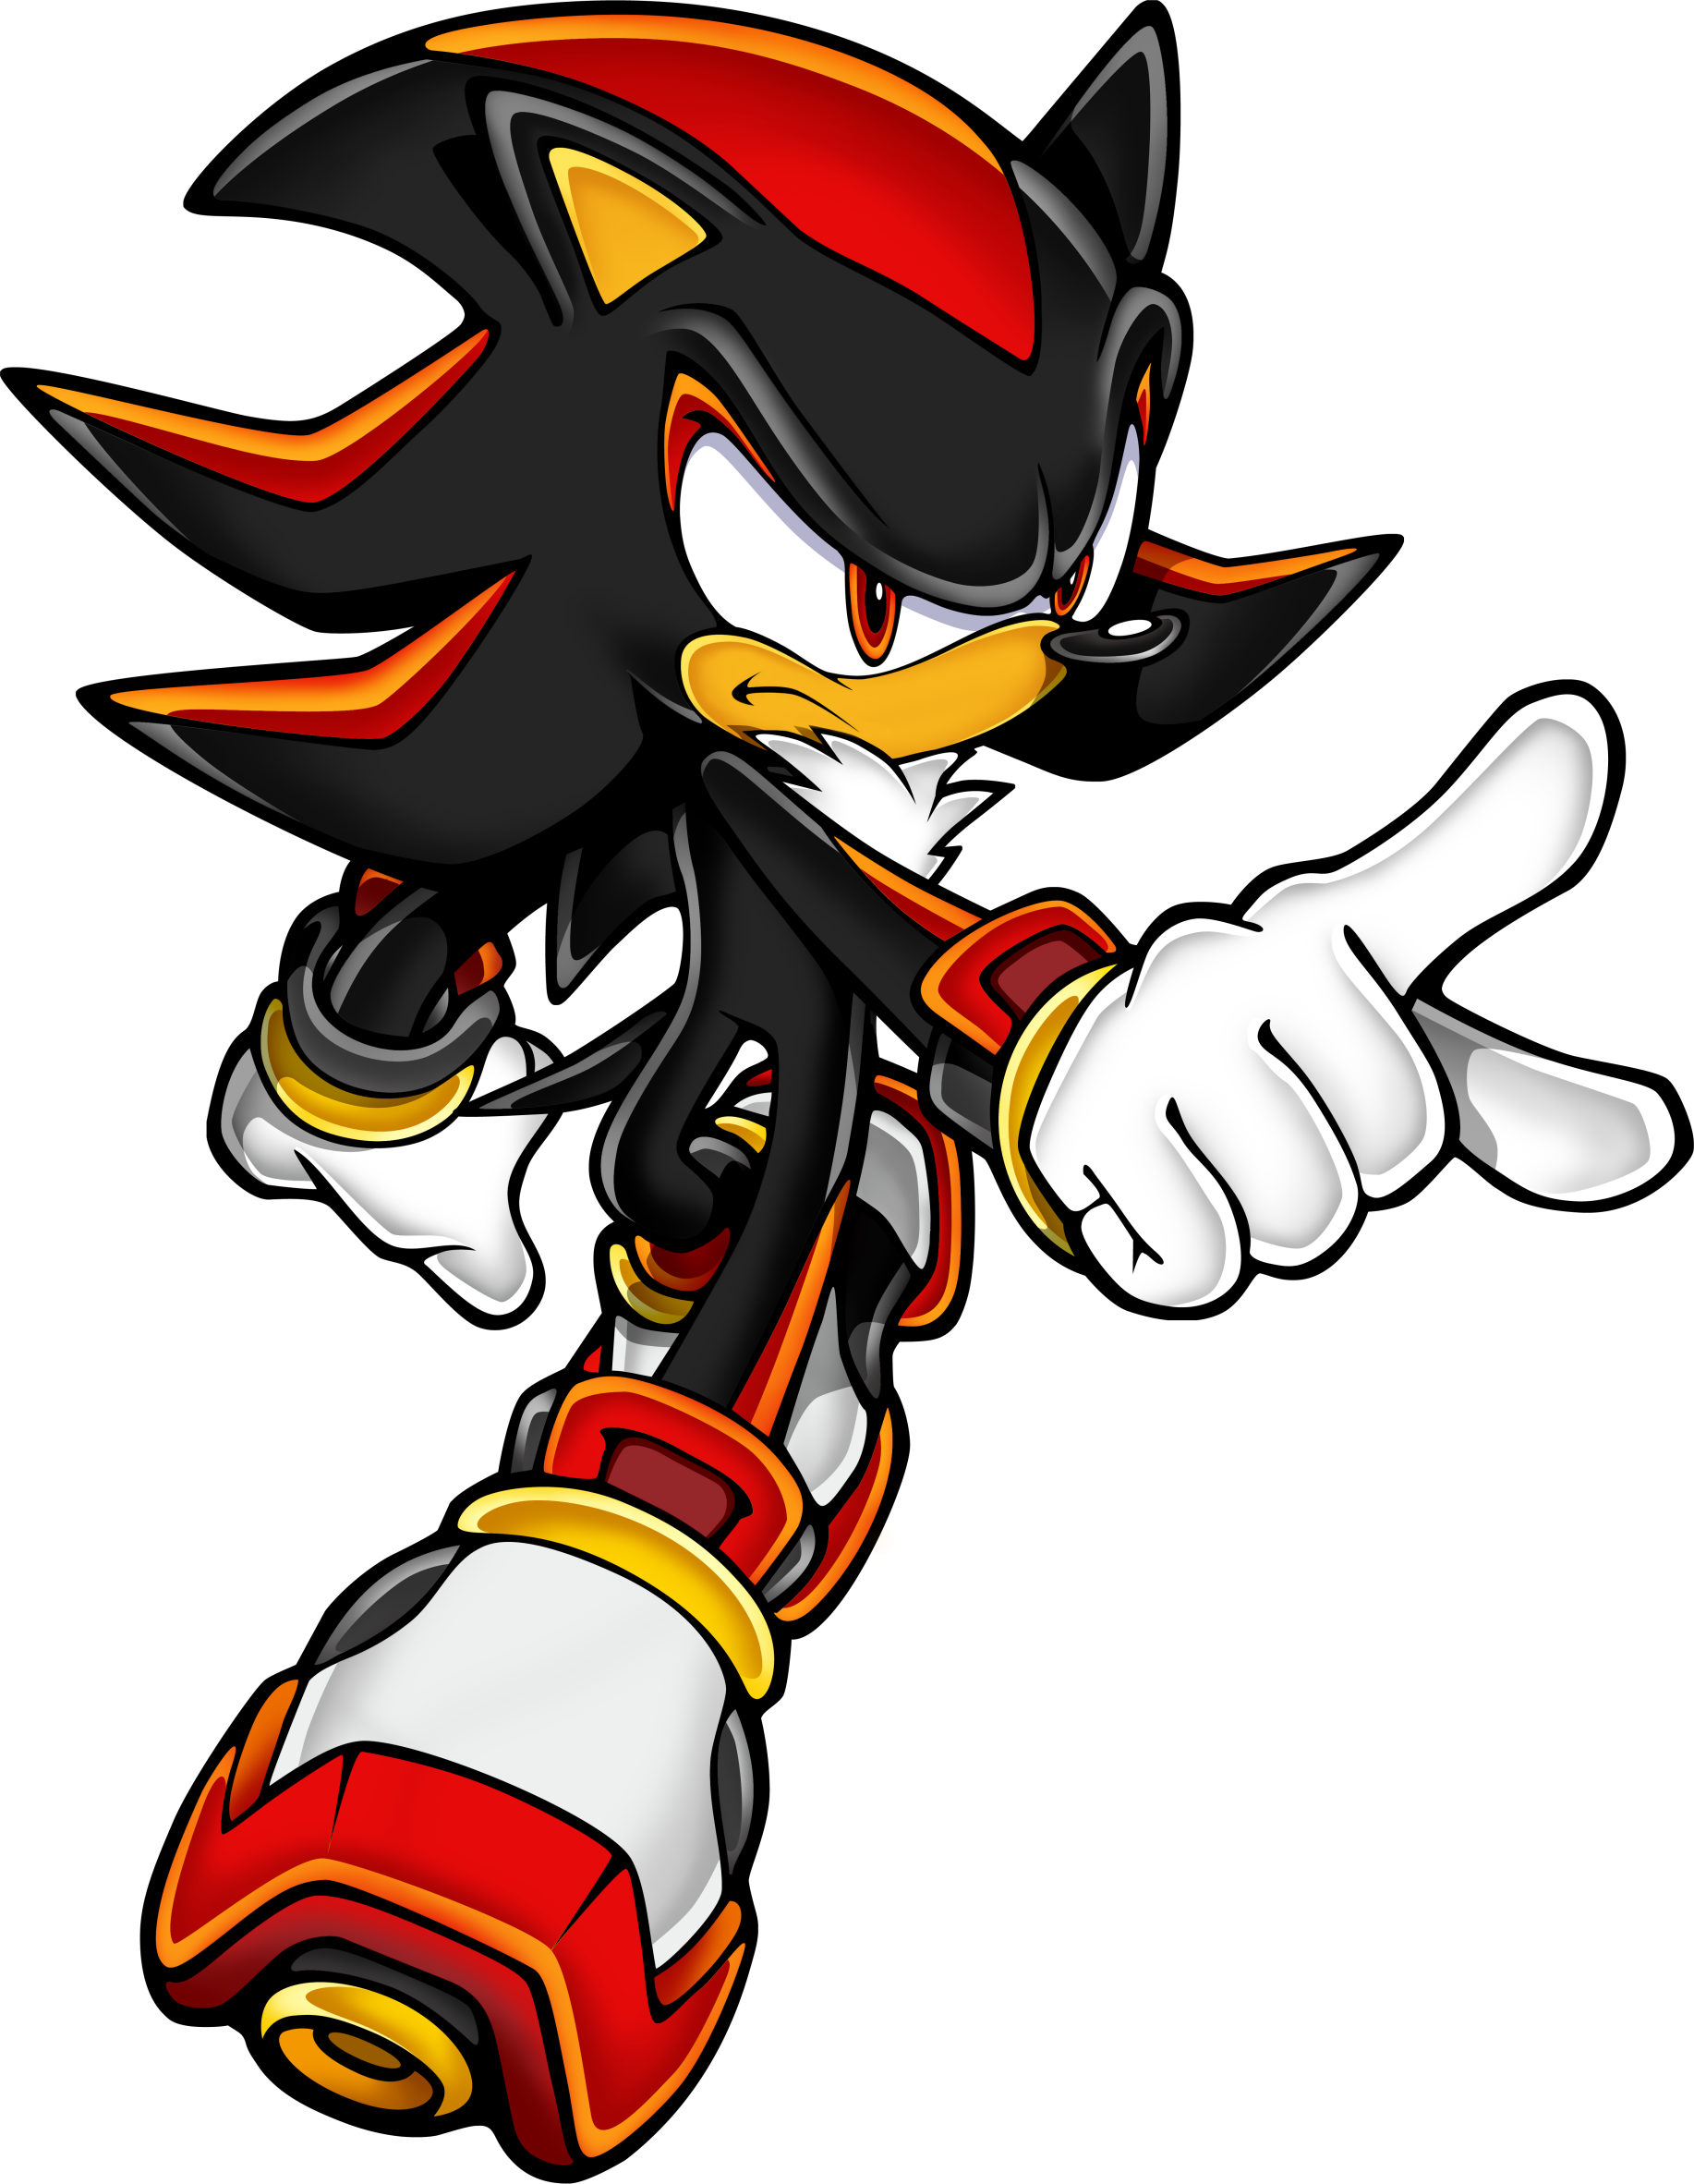 Image Sonic Art Assets Dvd Shadow Th 475247 Png Images Pngio